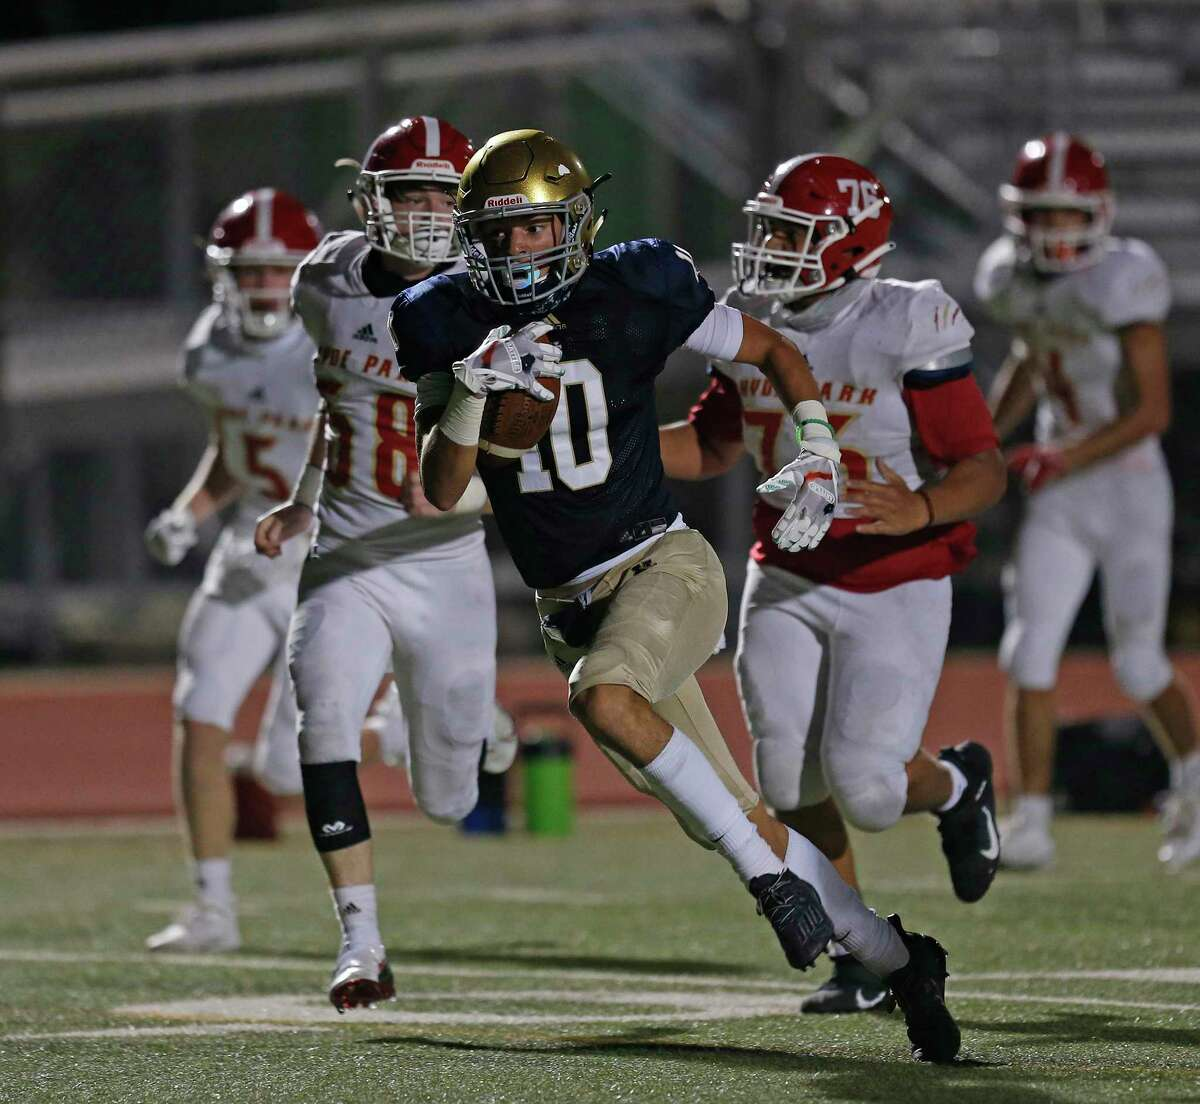 Holy Cross Marcos Jimenez-Cedillo rubles for a touchdown in third quarter. Austin Hyde-Park v Holy Cross at Wheatley Heights Sports Complex on Friday, September 25, 2020. Holy Cross led in fourth quarter 49-26.